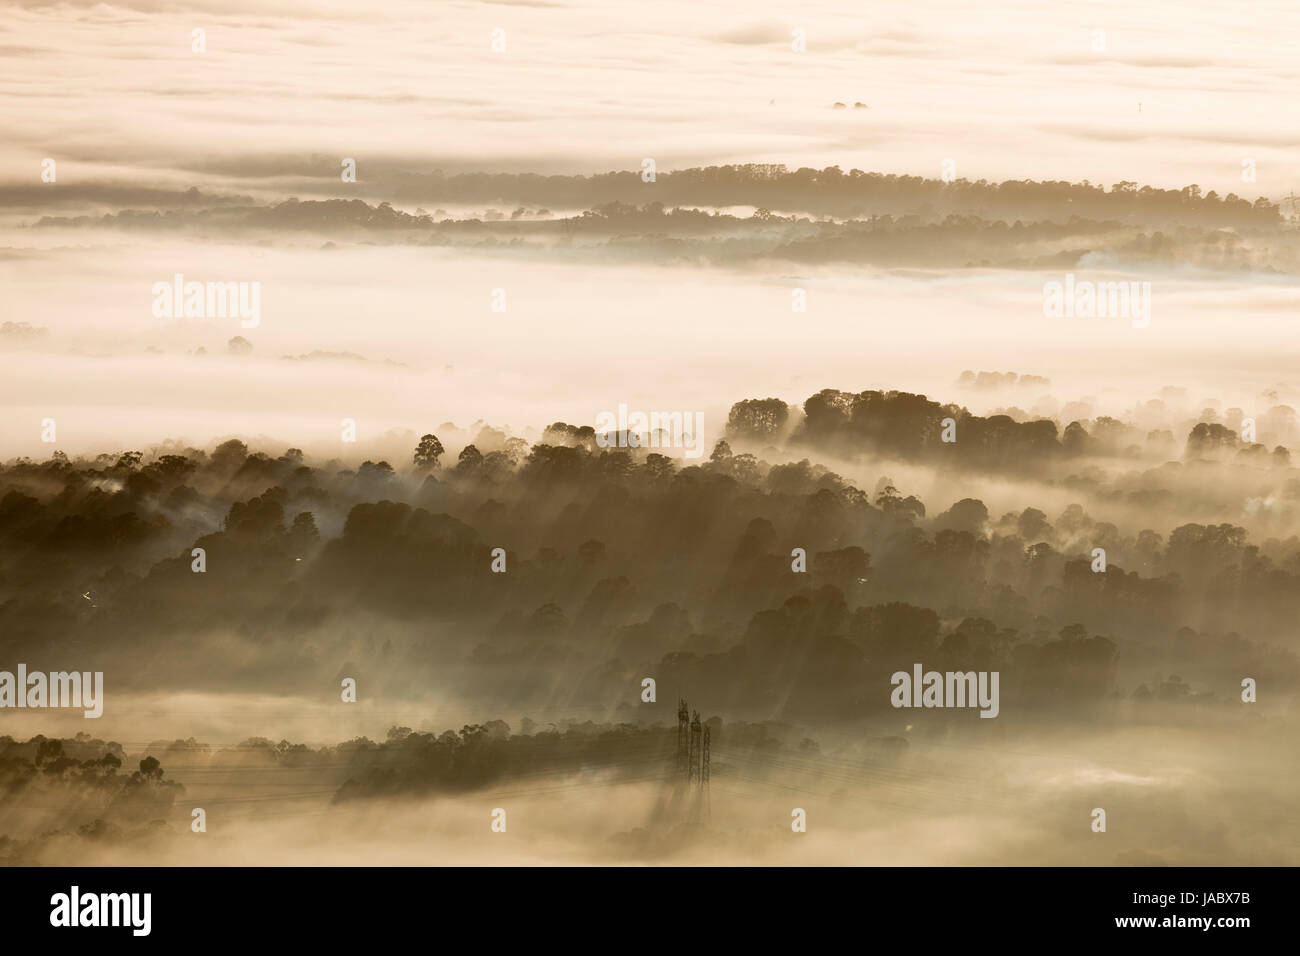 Natural landscape of forest with fogs in the morniing. - Stock Image